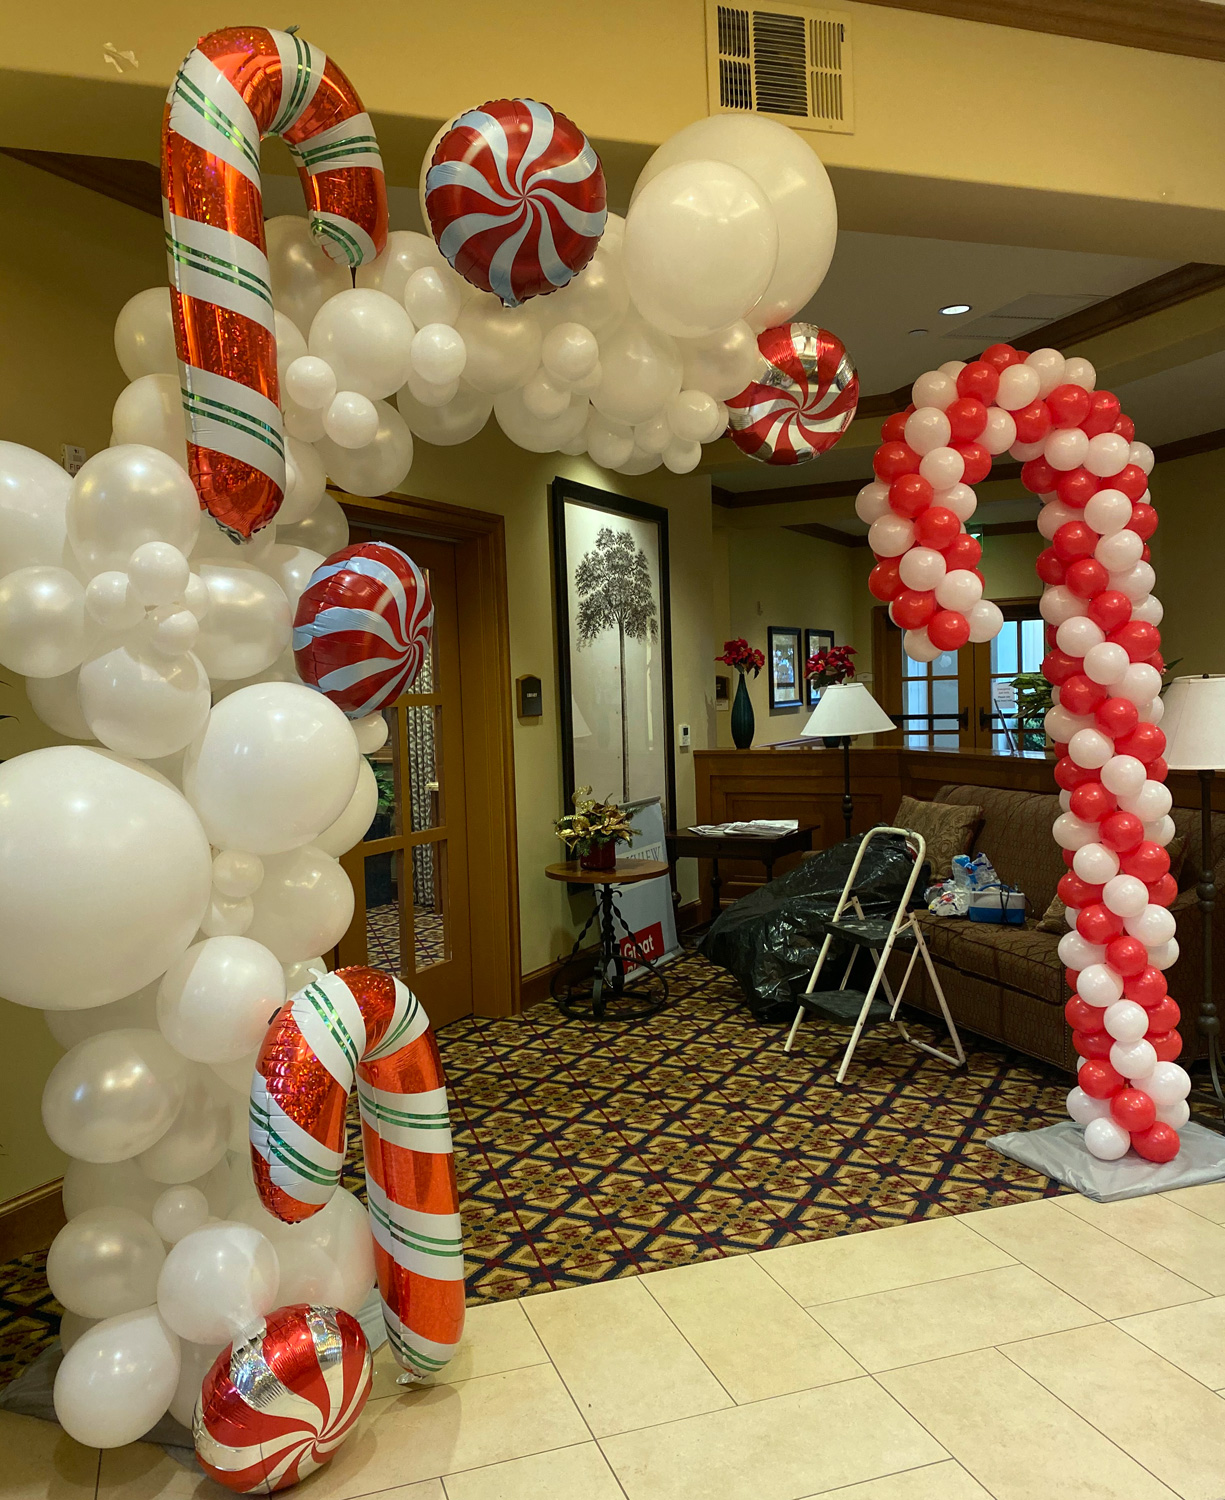 Bay Area Balloon - Candy Cane Arch and Sculpture